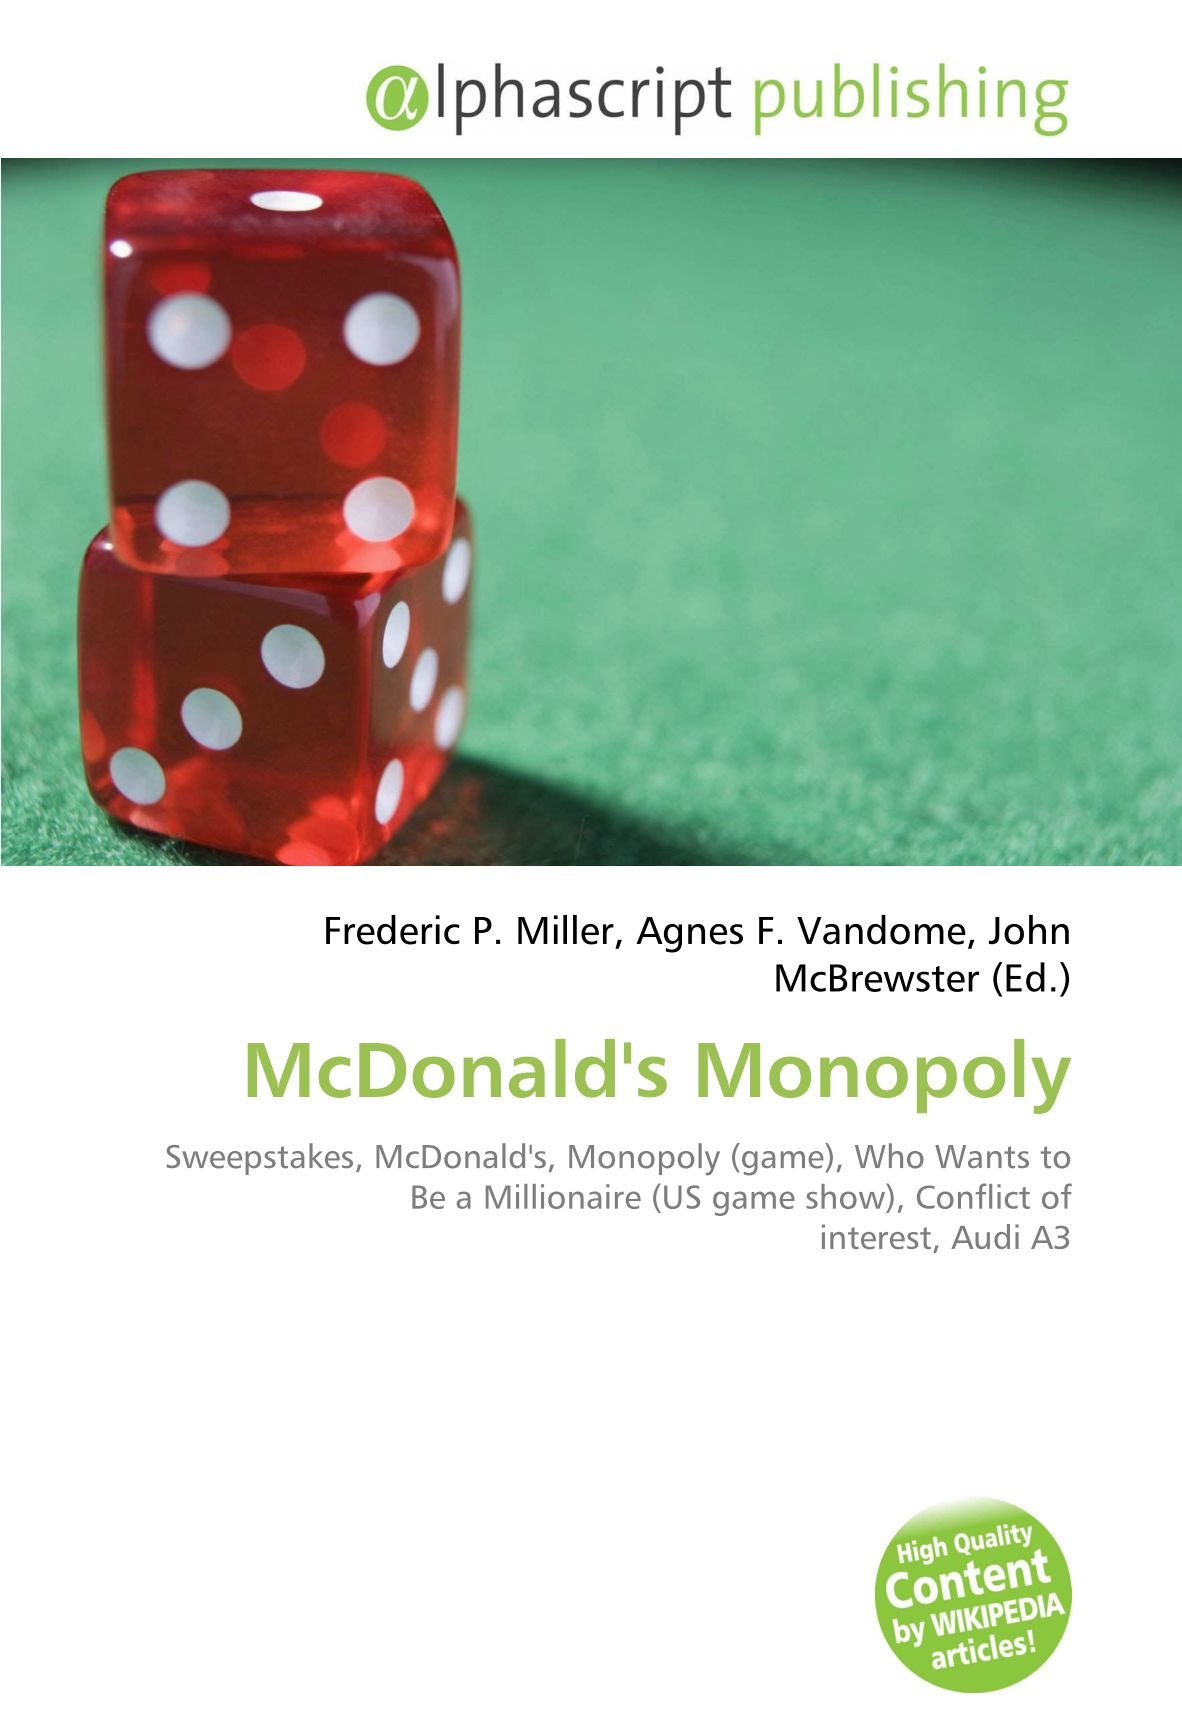 McDonalds Monopoly: Sweepstakes, McDonalds, Monopoly game , Who Wants to Be a Millionaire US game show , Conflict of interest, Audi A3: Amazon.es: Miller, Frederic P, Vandome, Agnes F, McBrewster, John: Libros